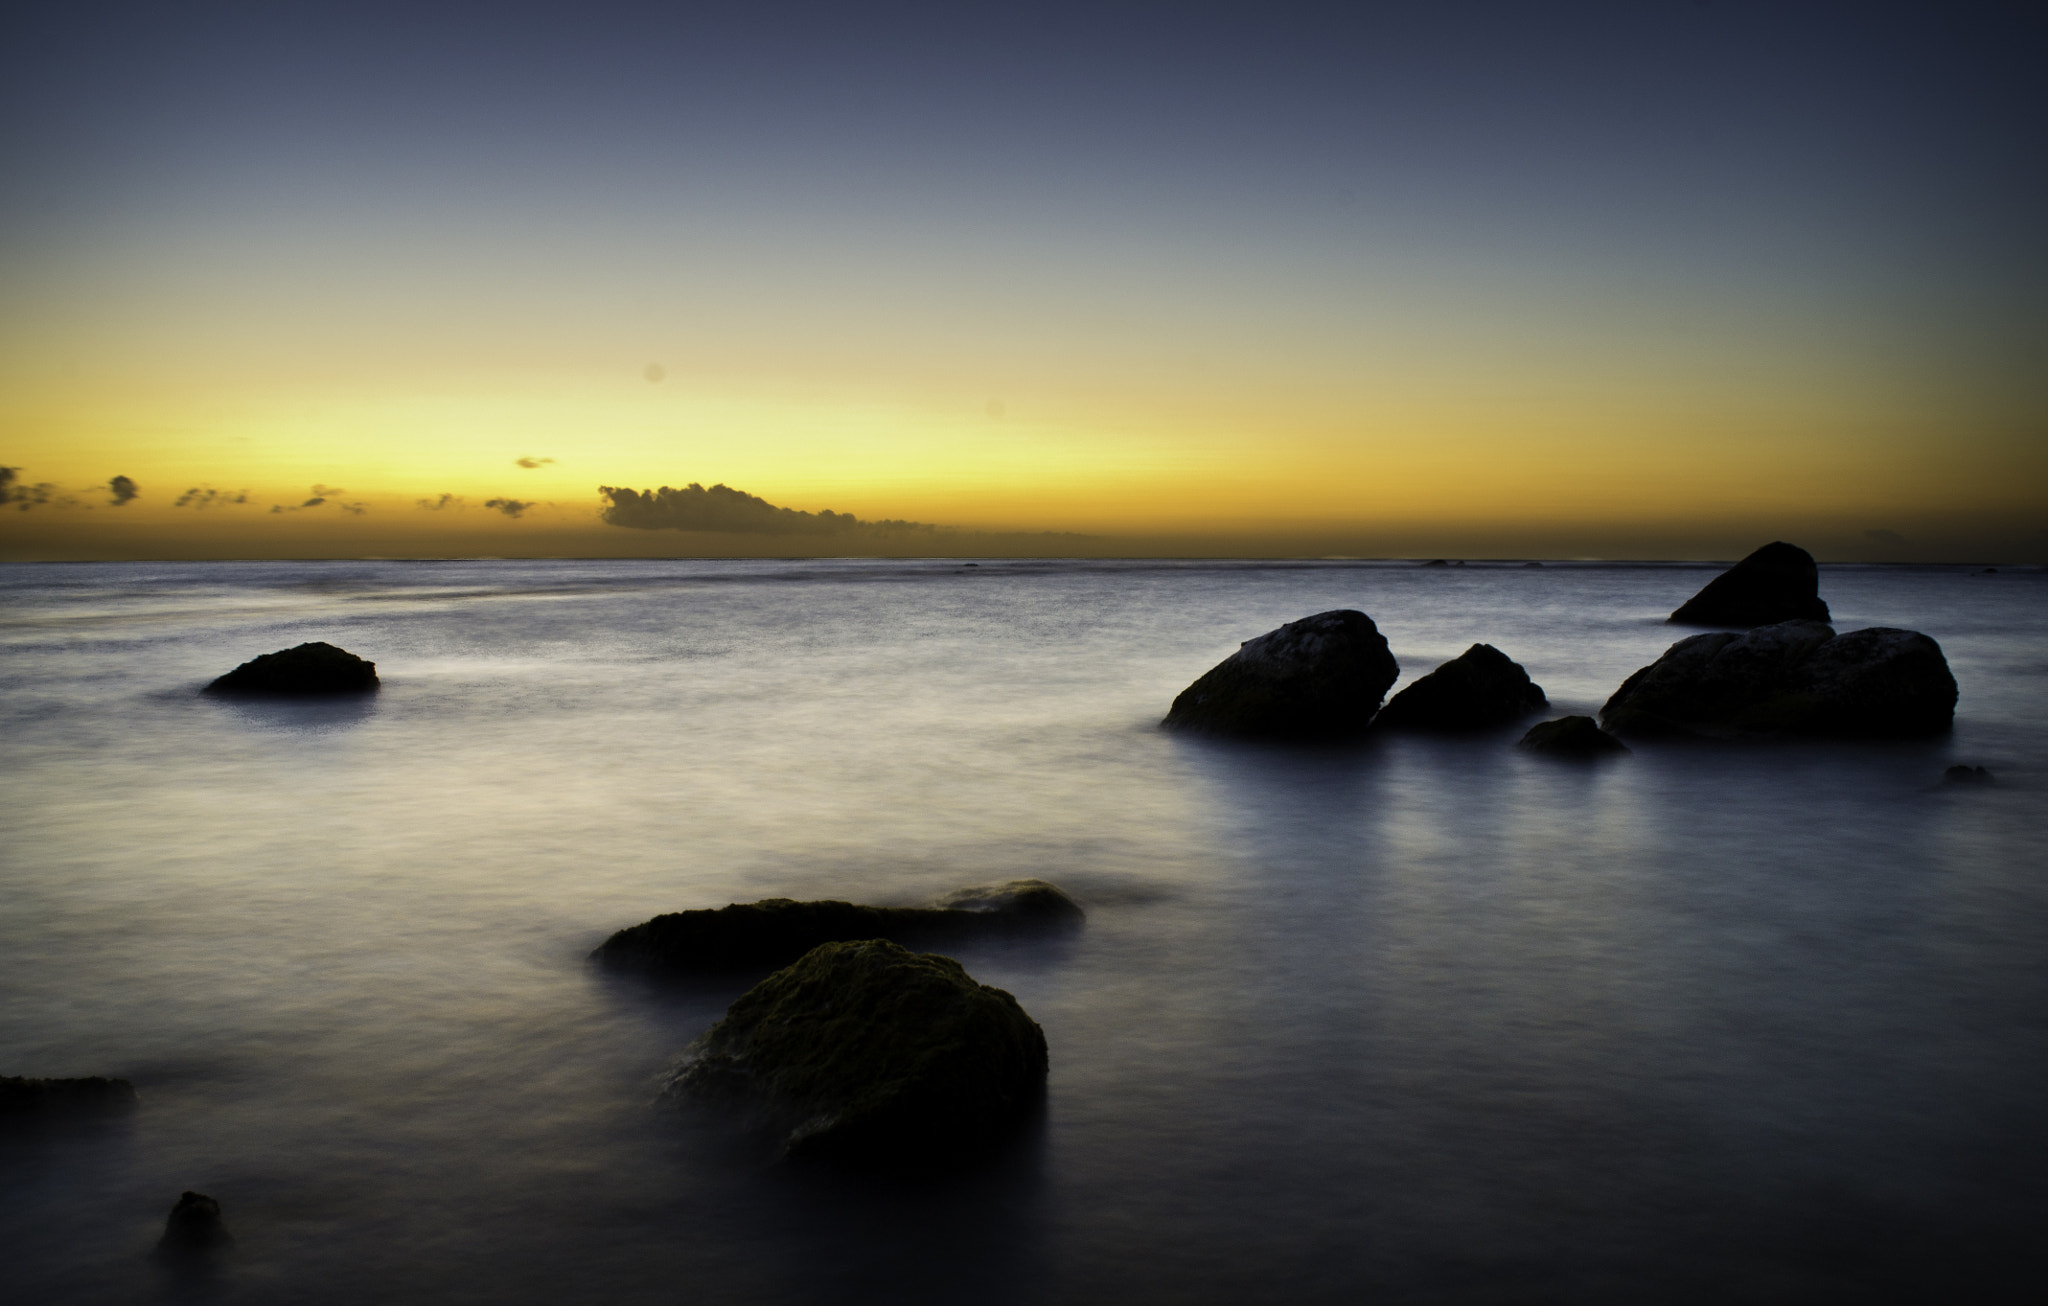 Photograph Aruba Seascape by Ayrton Tromp on 500px